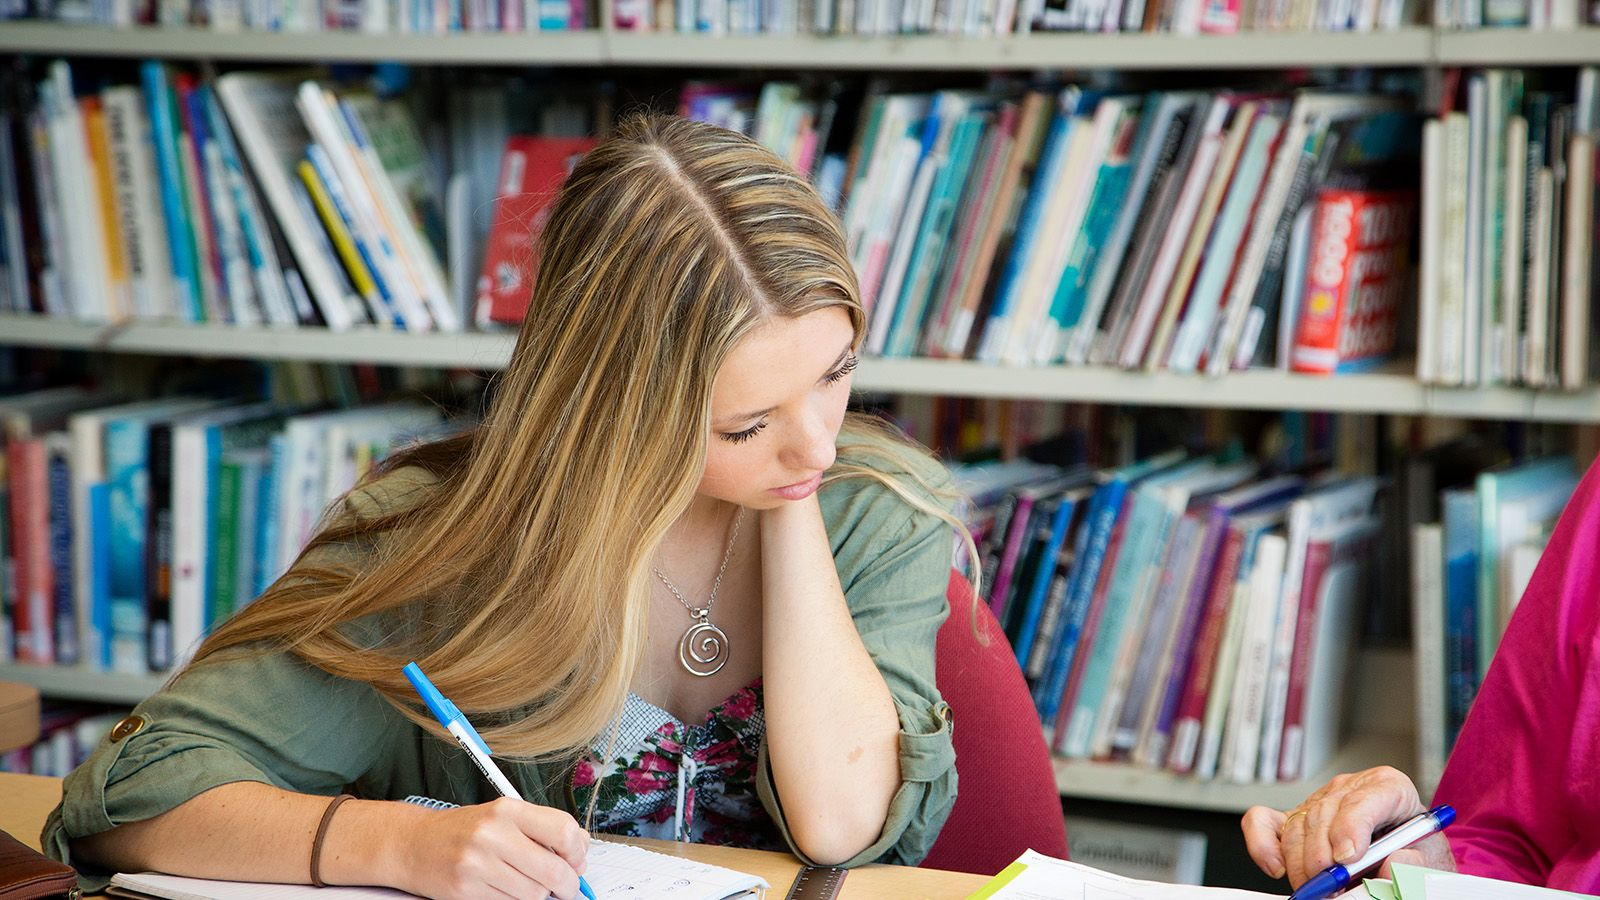 A young woman taking notes from a library book into her own notebook banner image